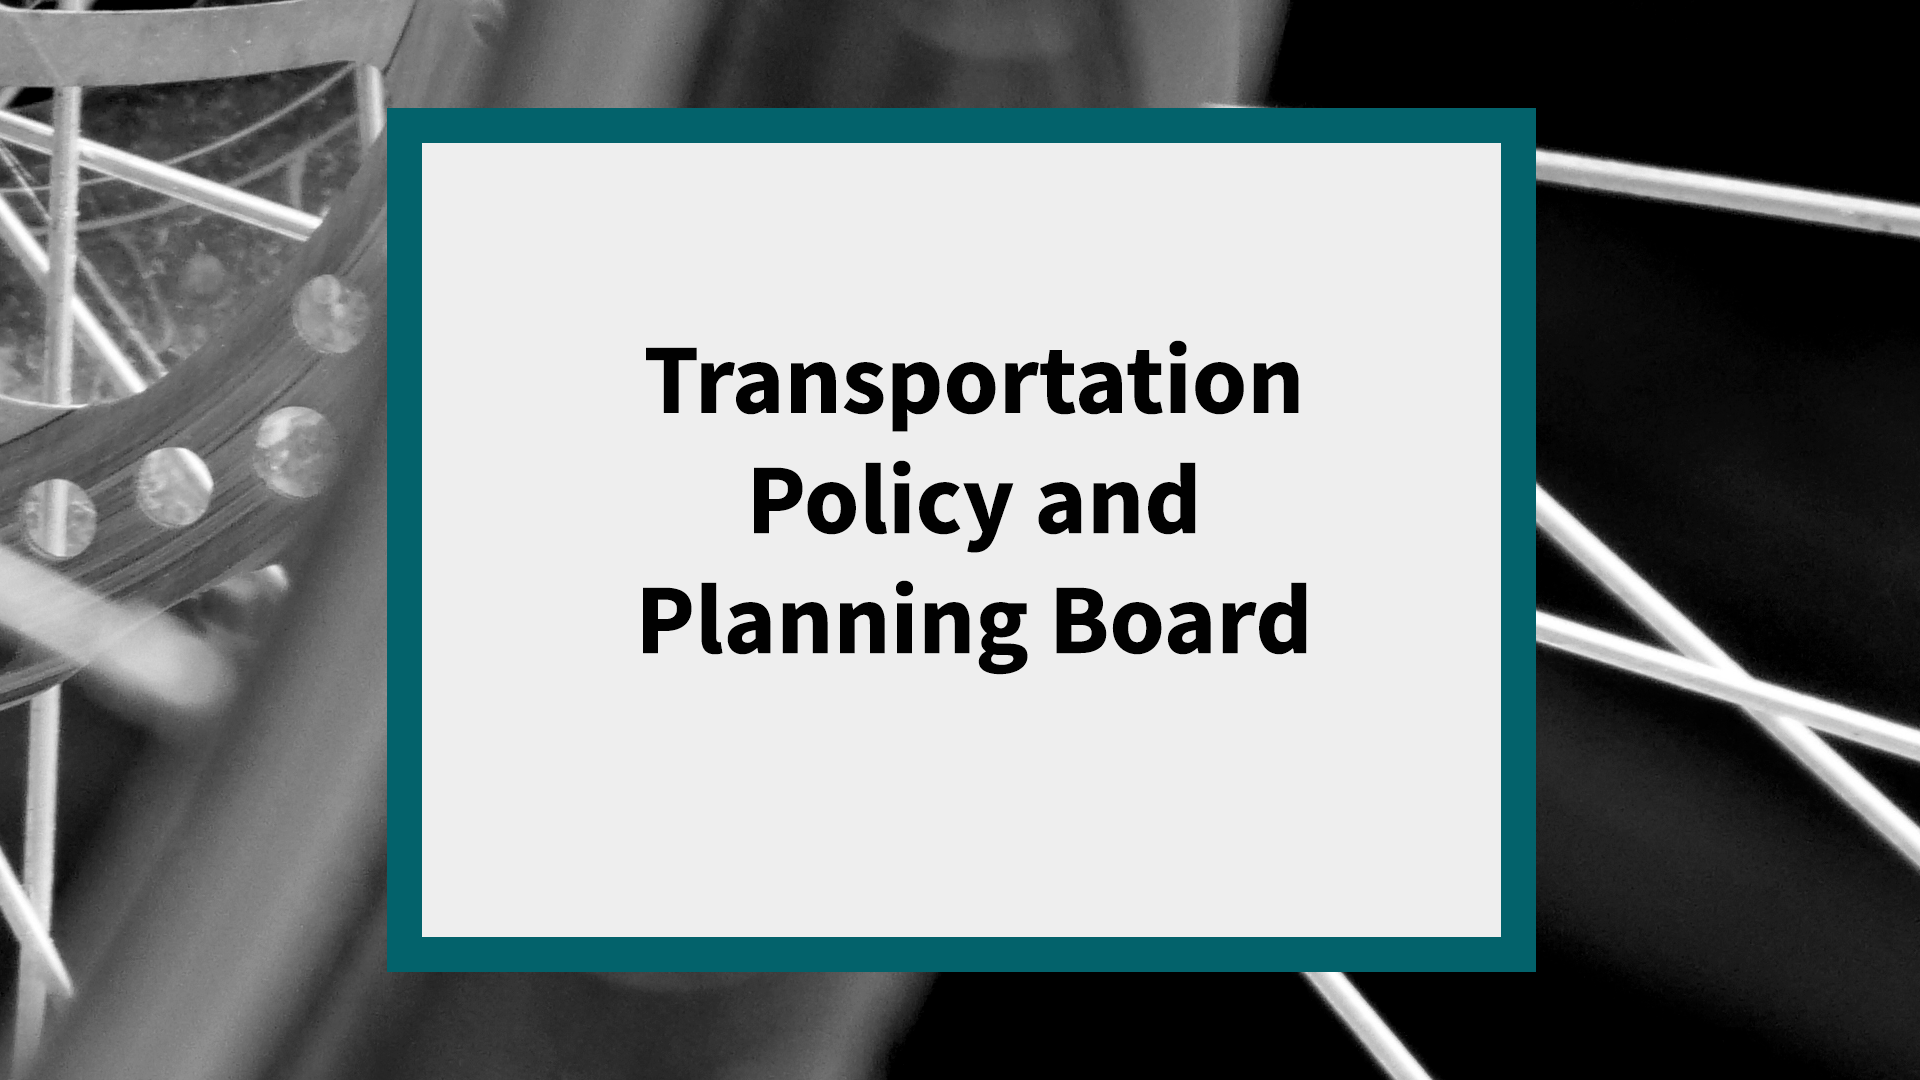 Transportation Policy and Planning Board